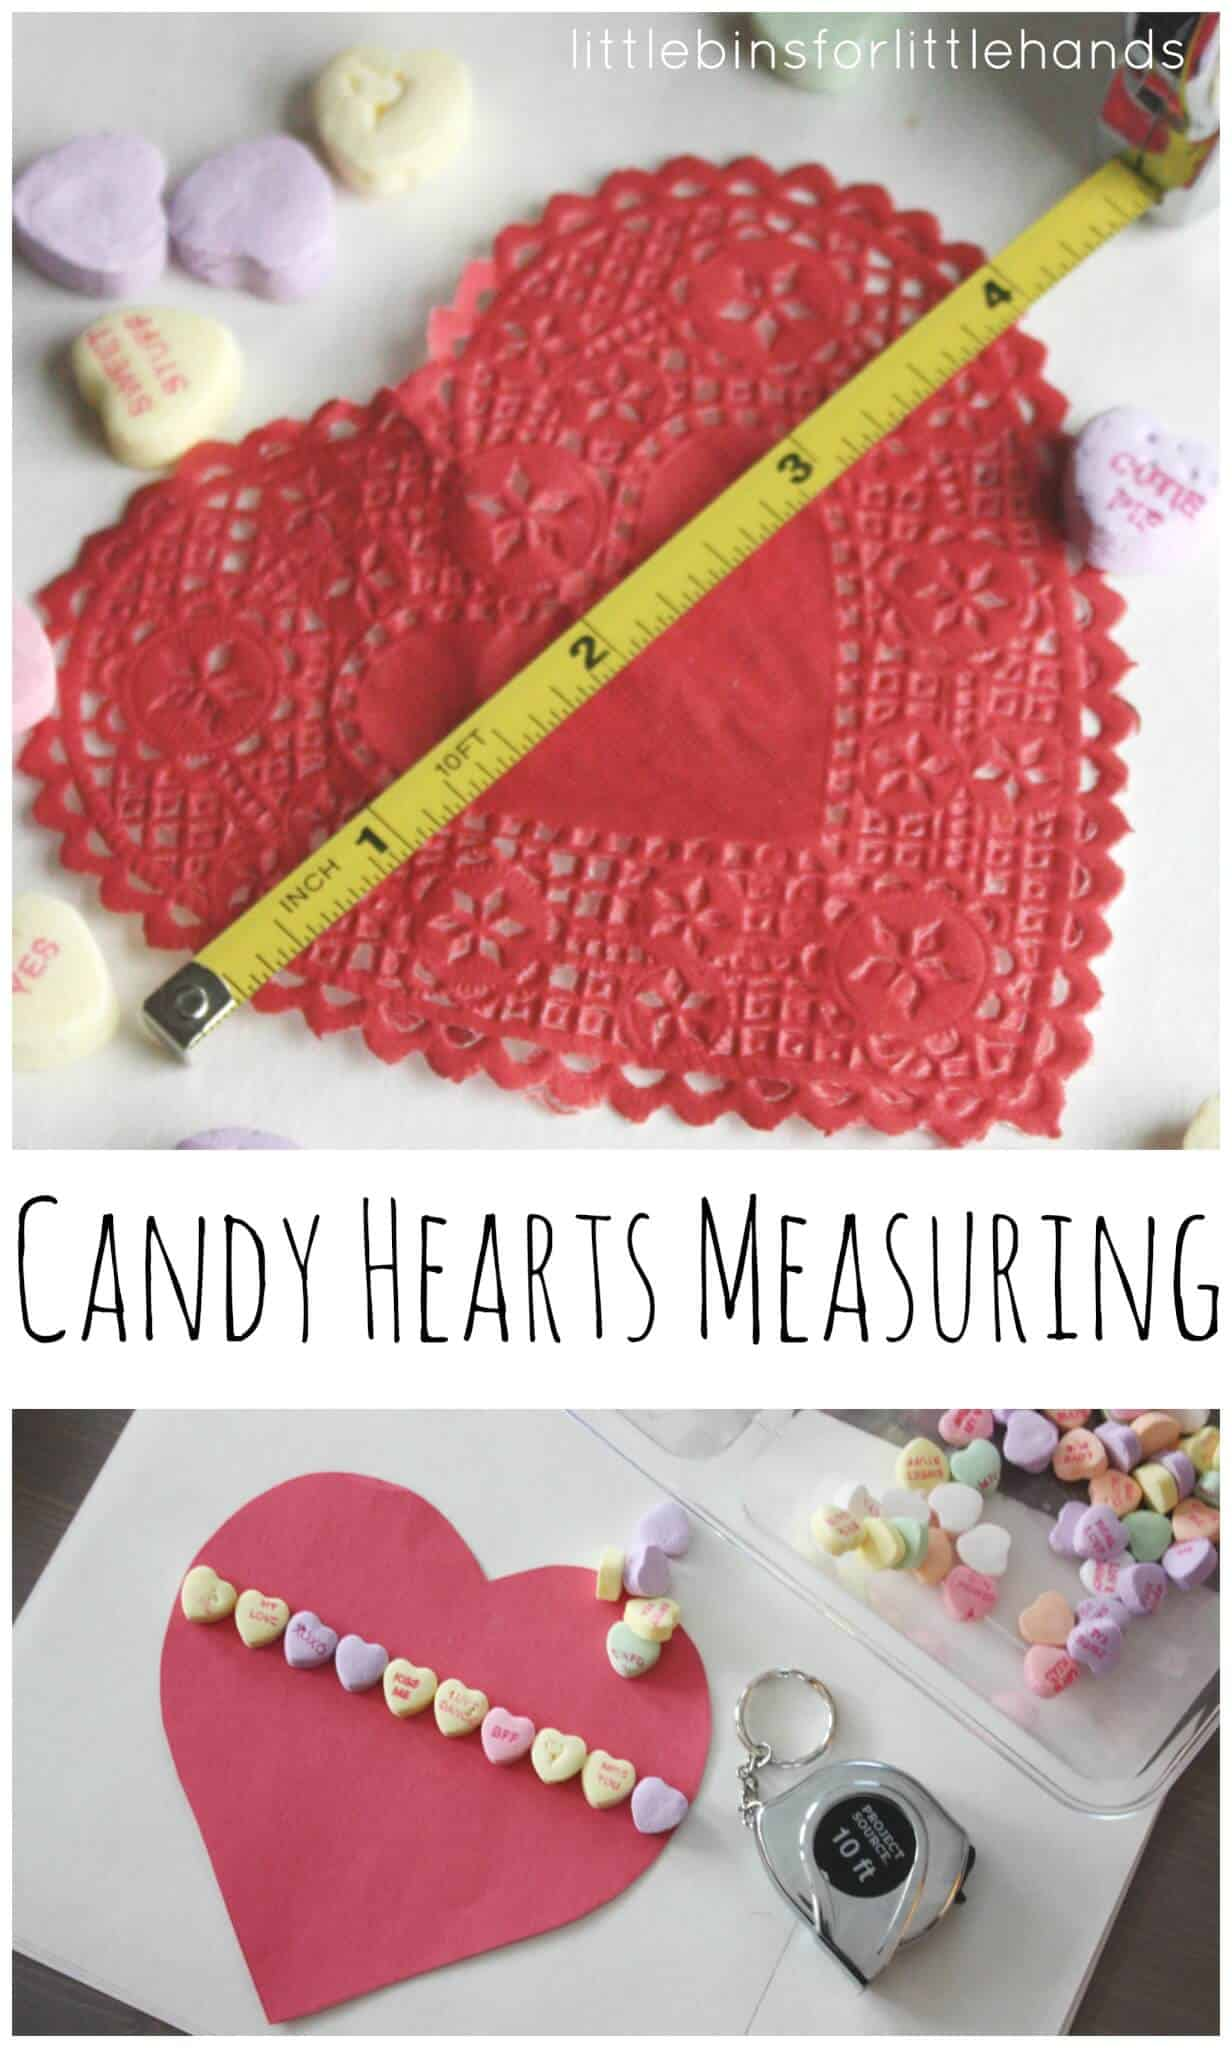 Candy Hearts Activities And Science Ideas For Valentines Days